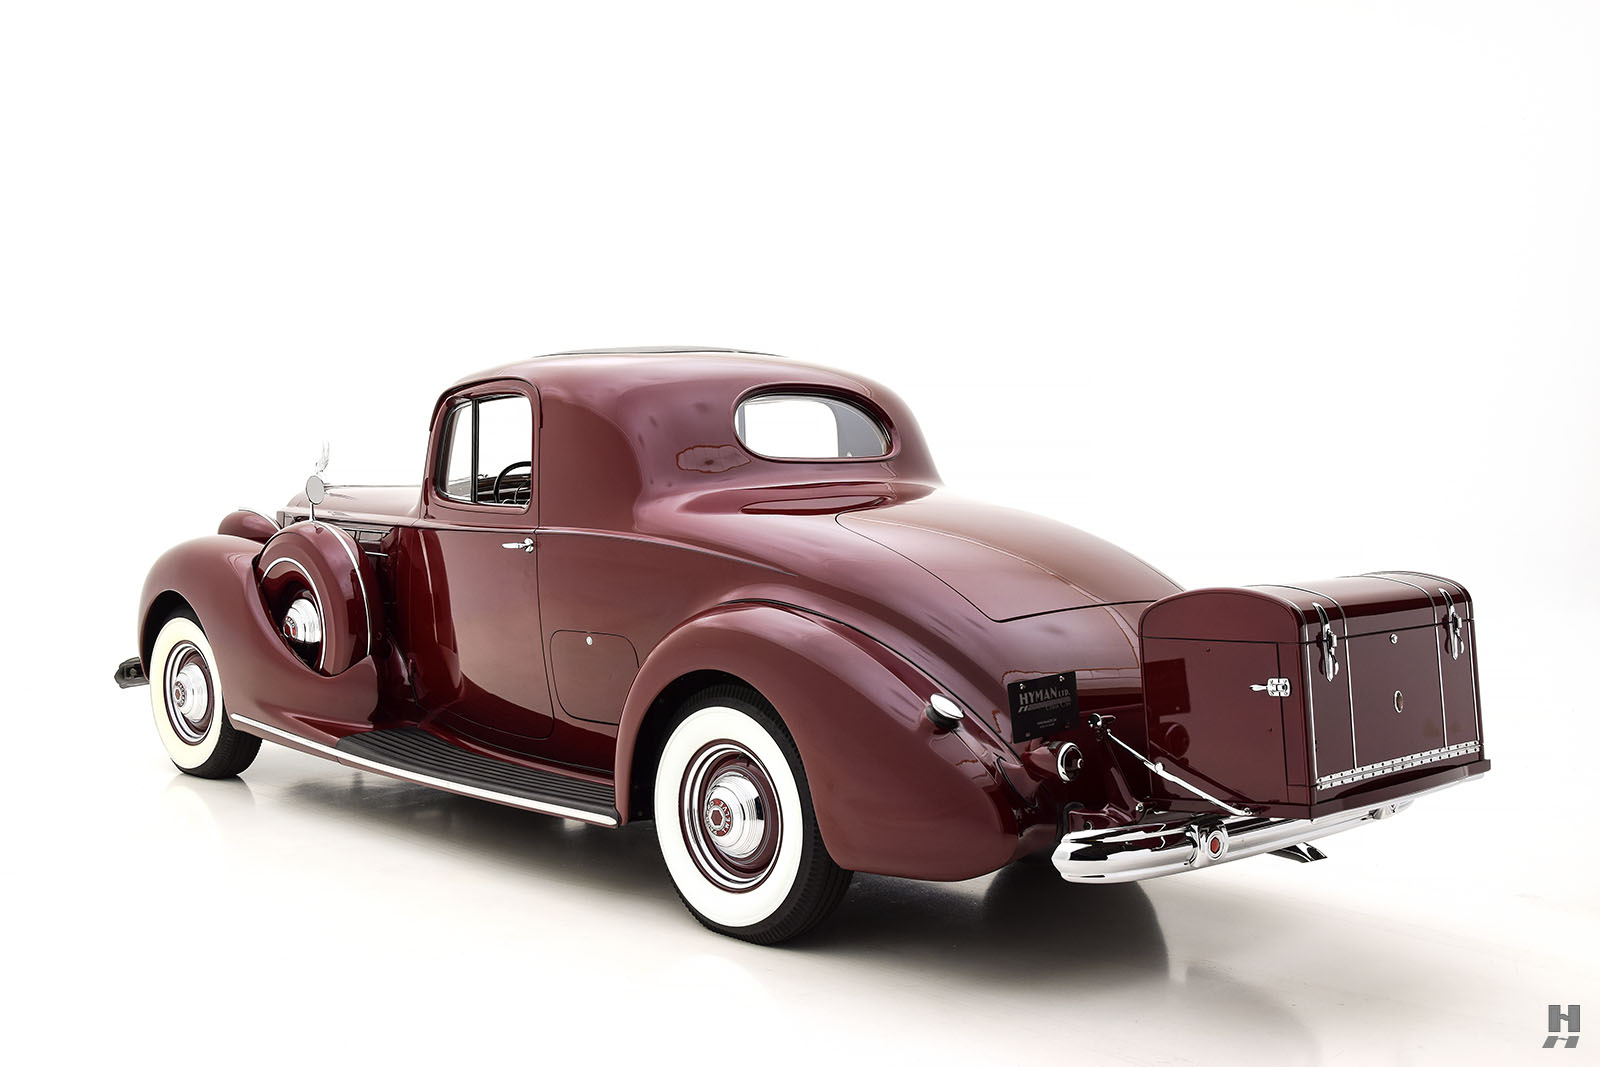 1939 Packard Twelve Coupe For Sale | Buy Classic Packard | Hyman LTD